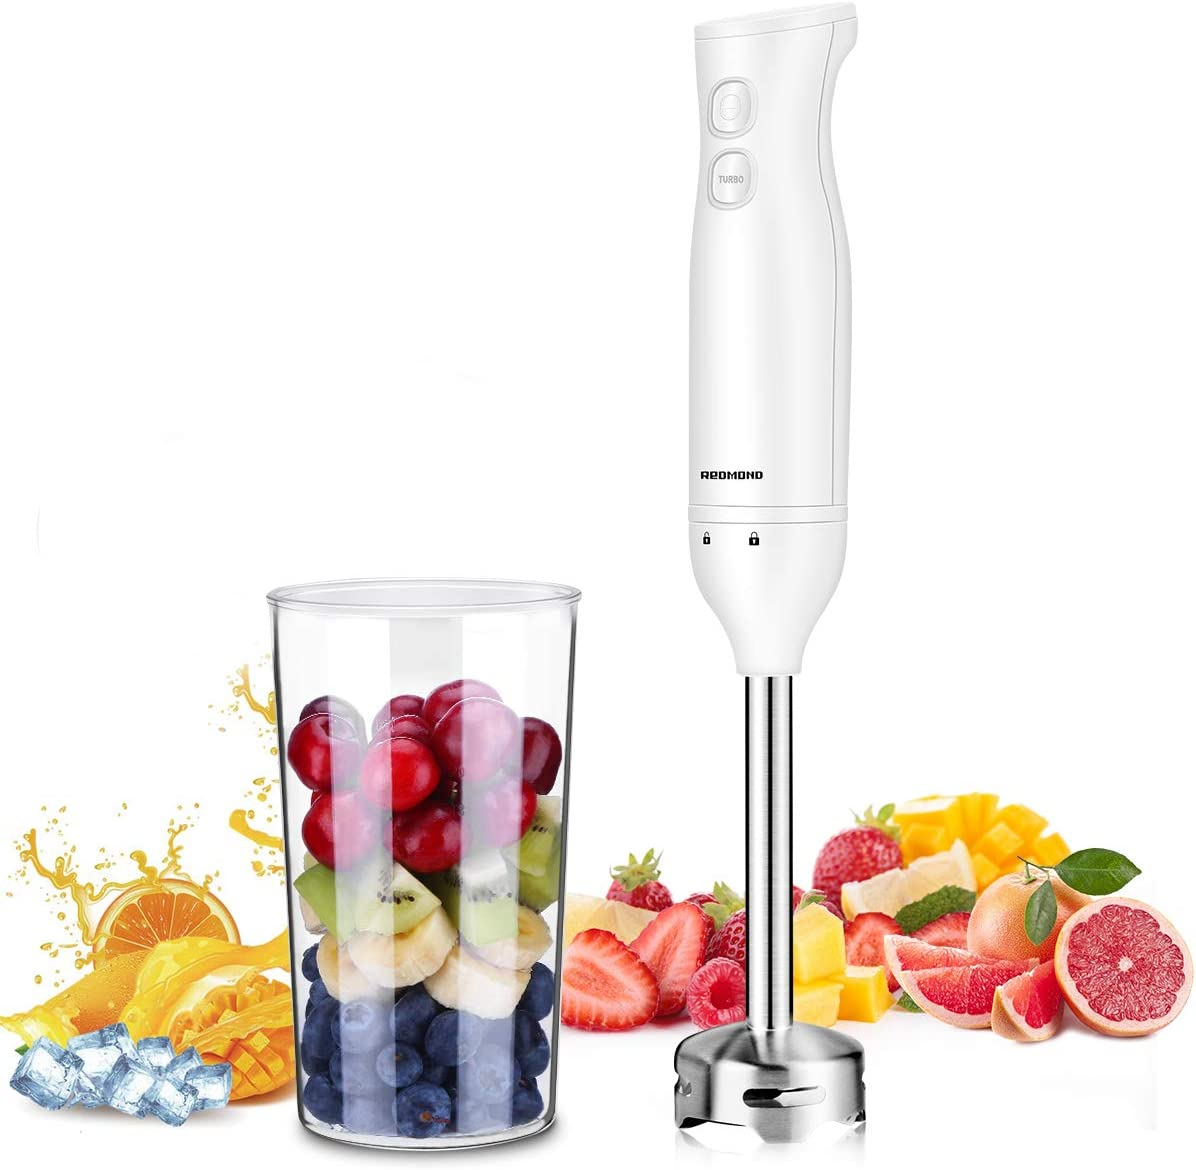 REDMOND Immersion Blender, 2-in-1 Hand Blender Includes 750ml BPA-Free Beaker, 304 Robust Stainless Steel Stick, Ergonomically Handle Designed Handheld Blender for Baby Food, Juices, Sauces and Soup, HB001